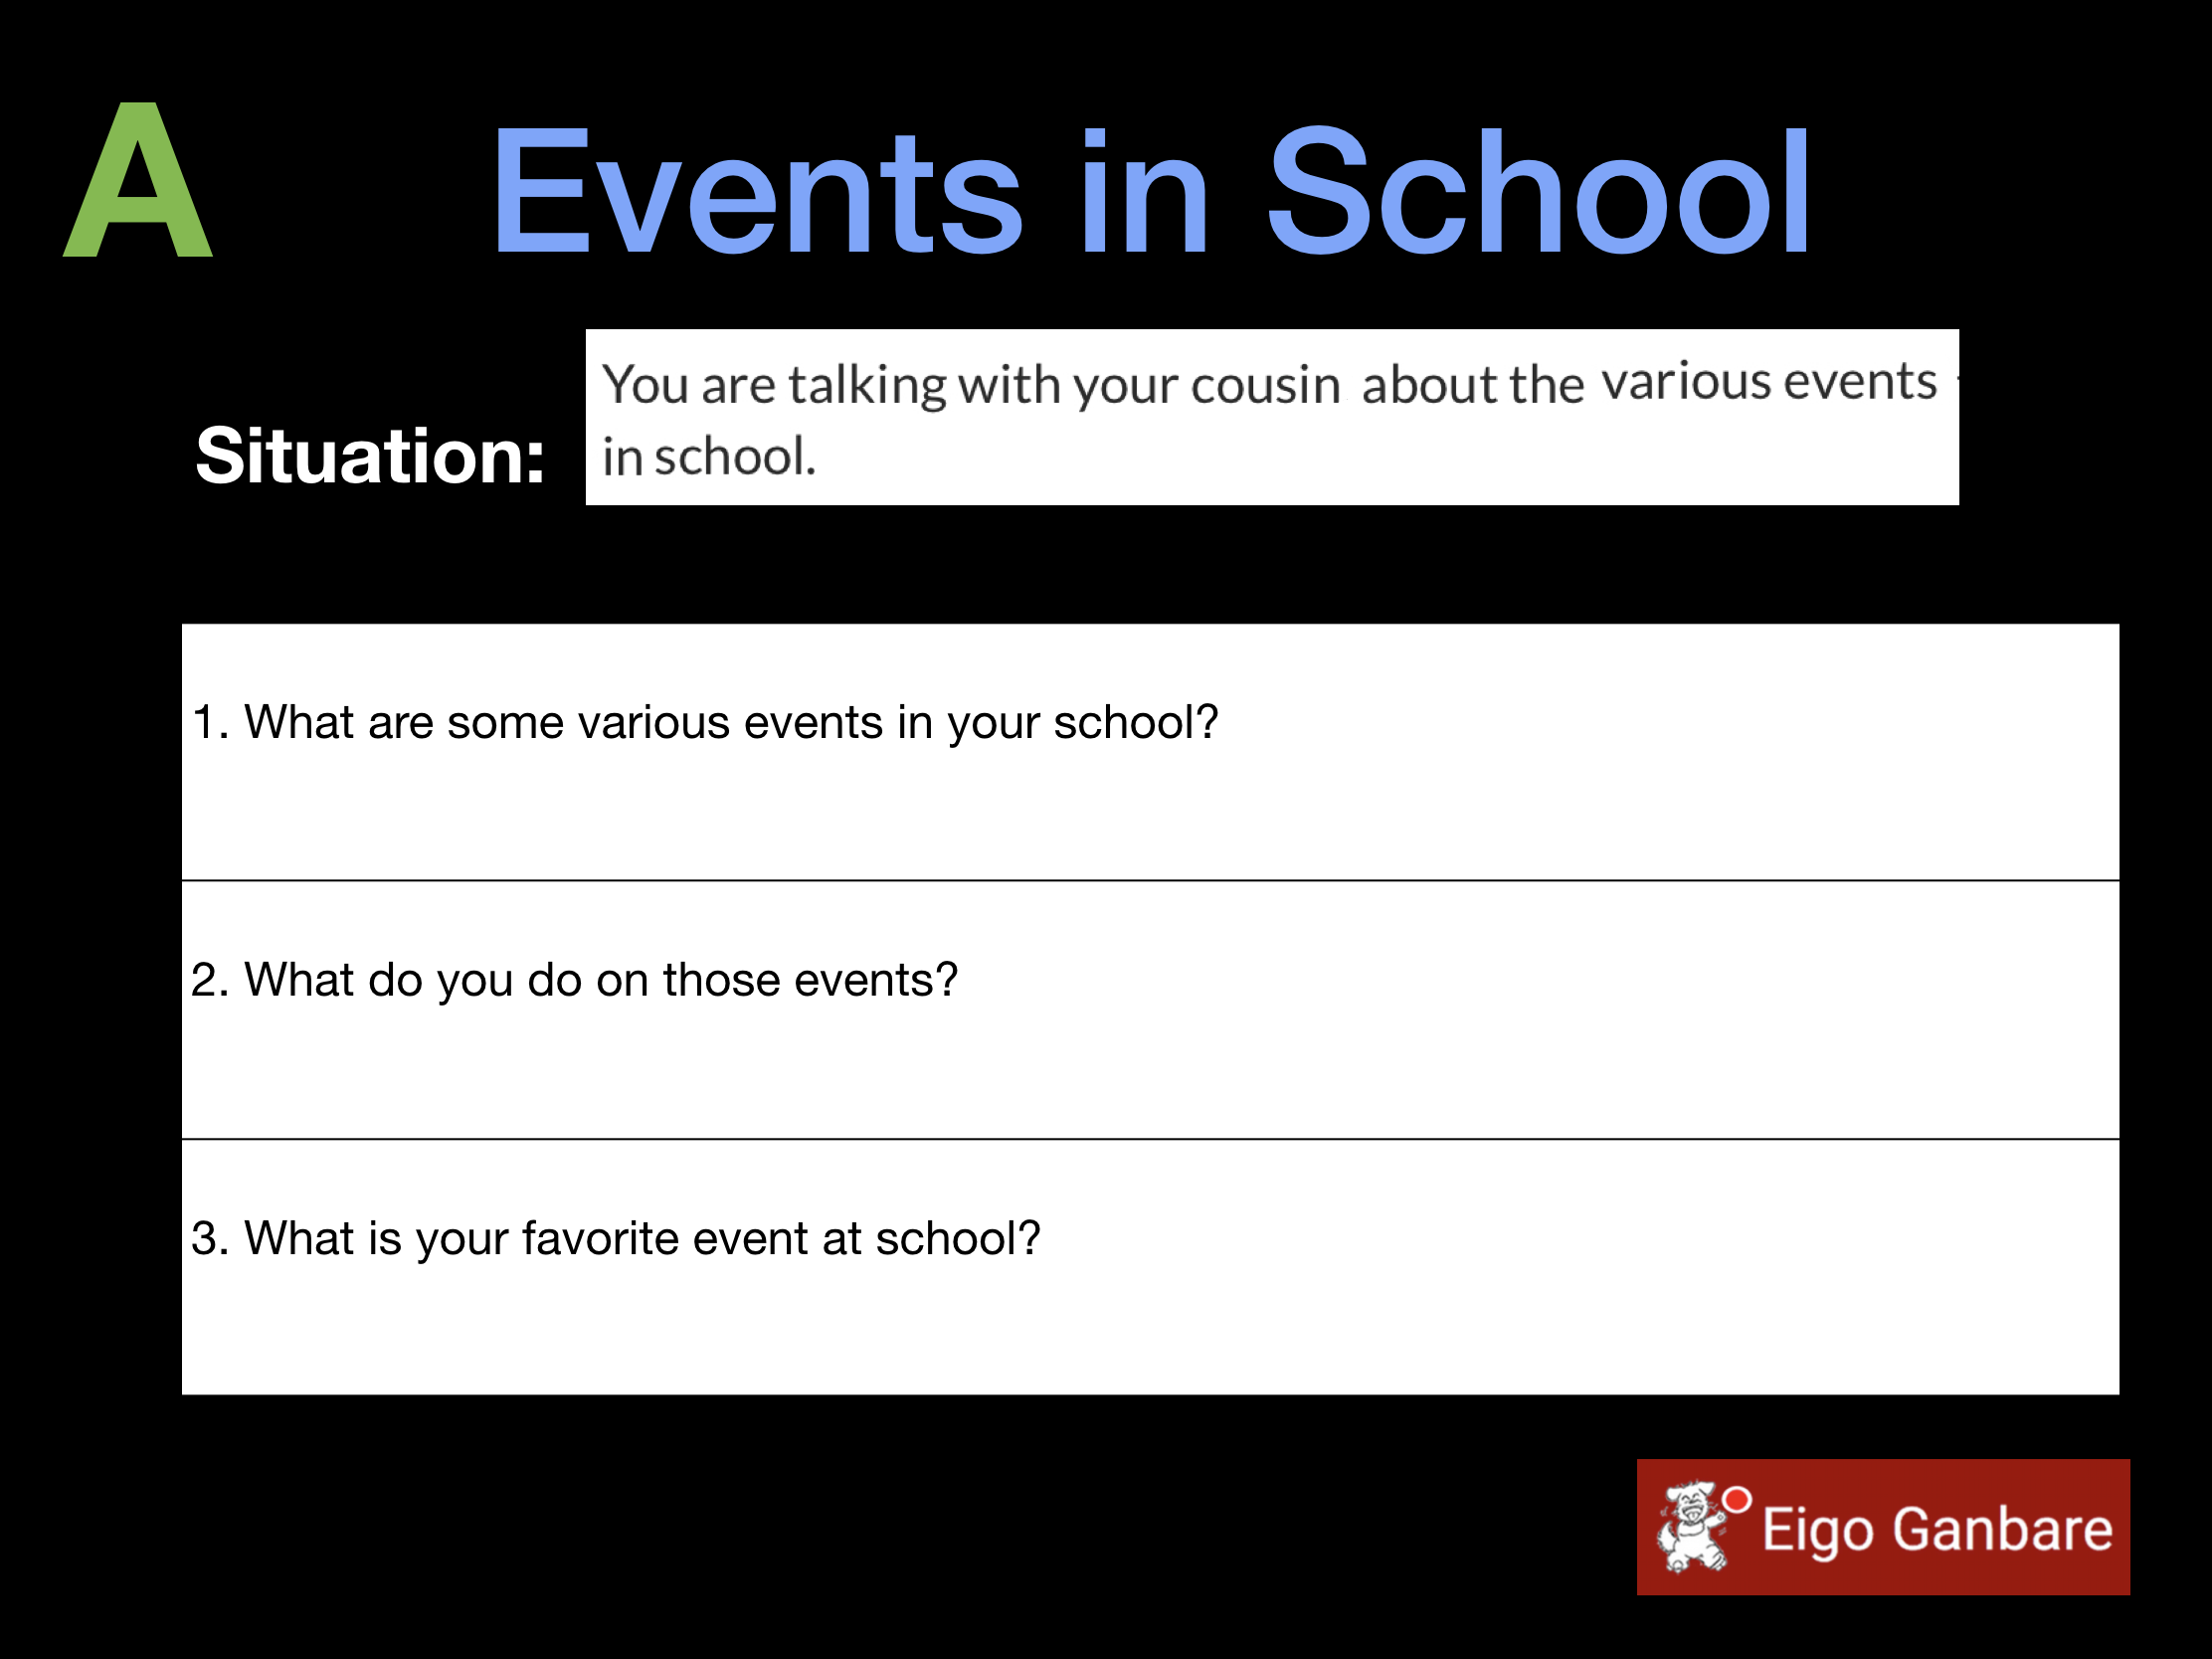 Events in School